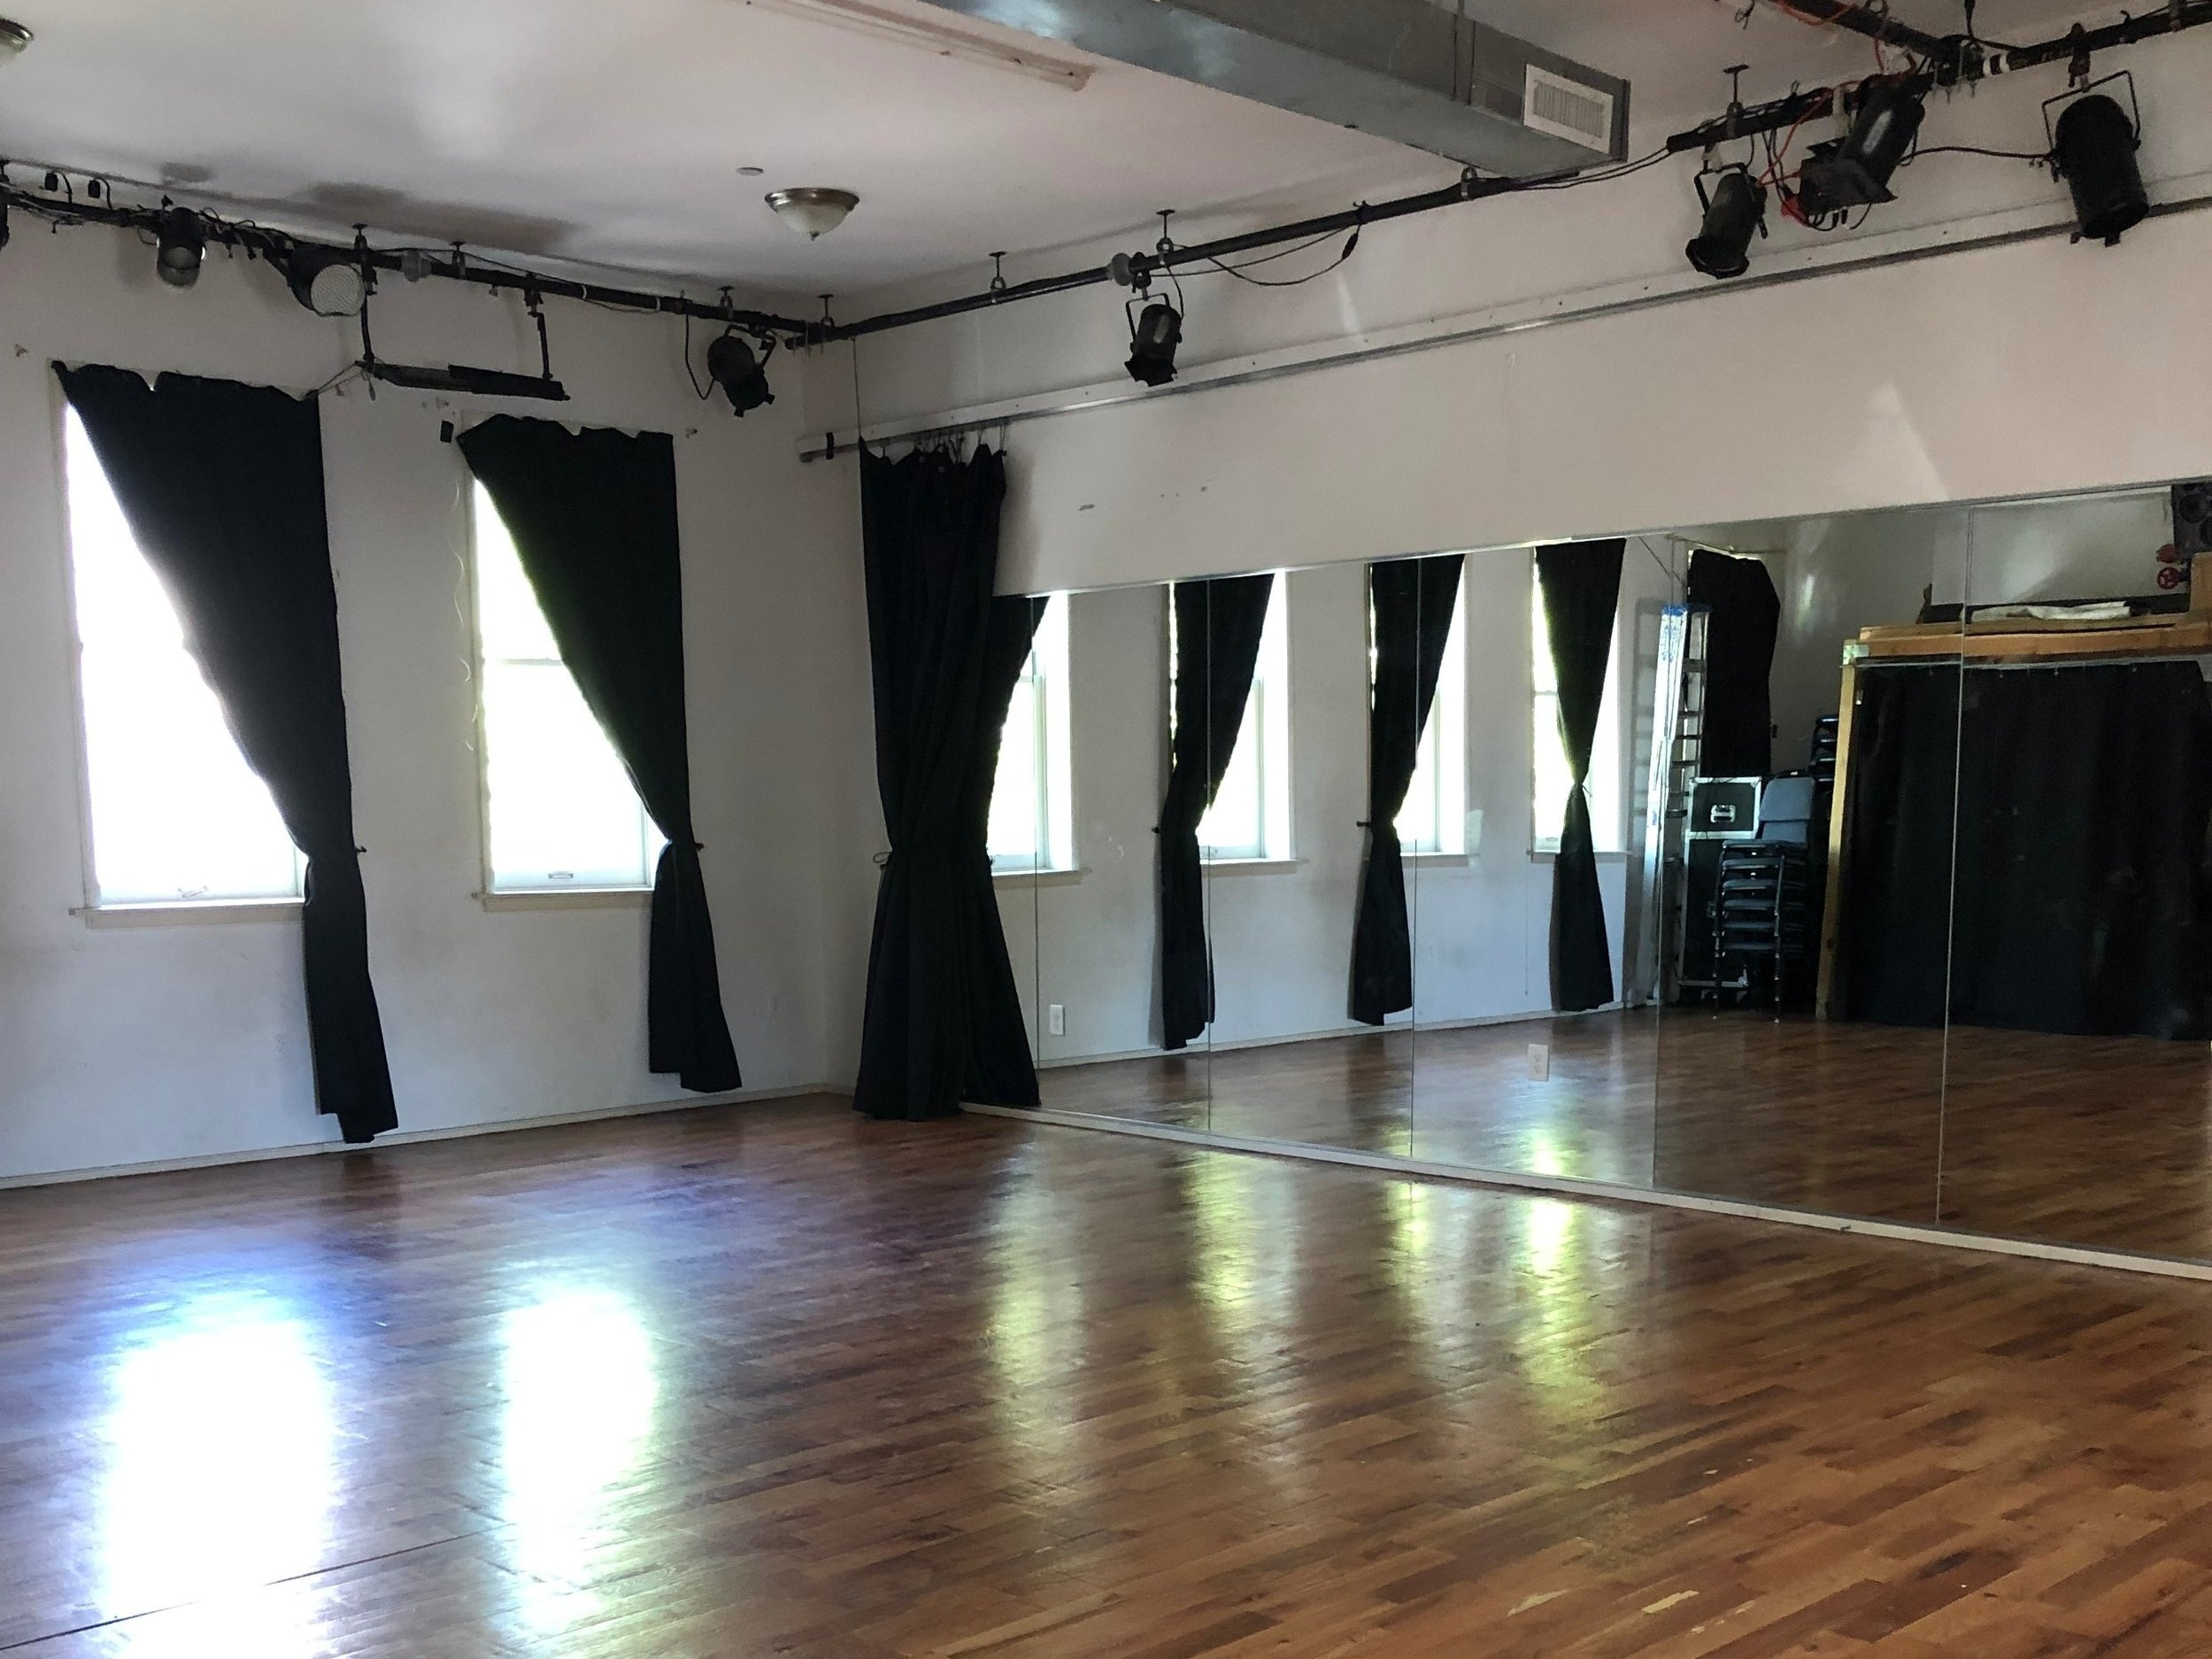 DOUGLAS ELLIMAN STUDIO THEATER - 27' W x 30' L